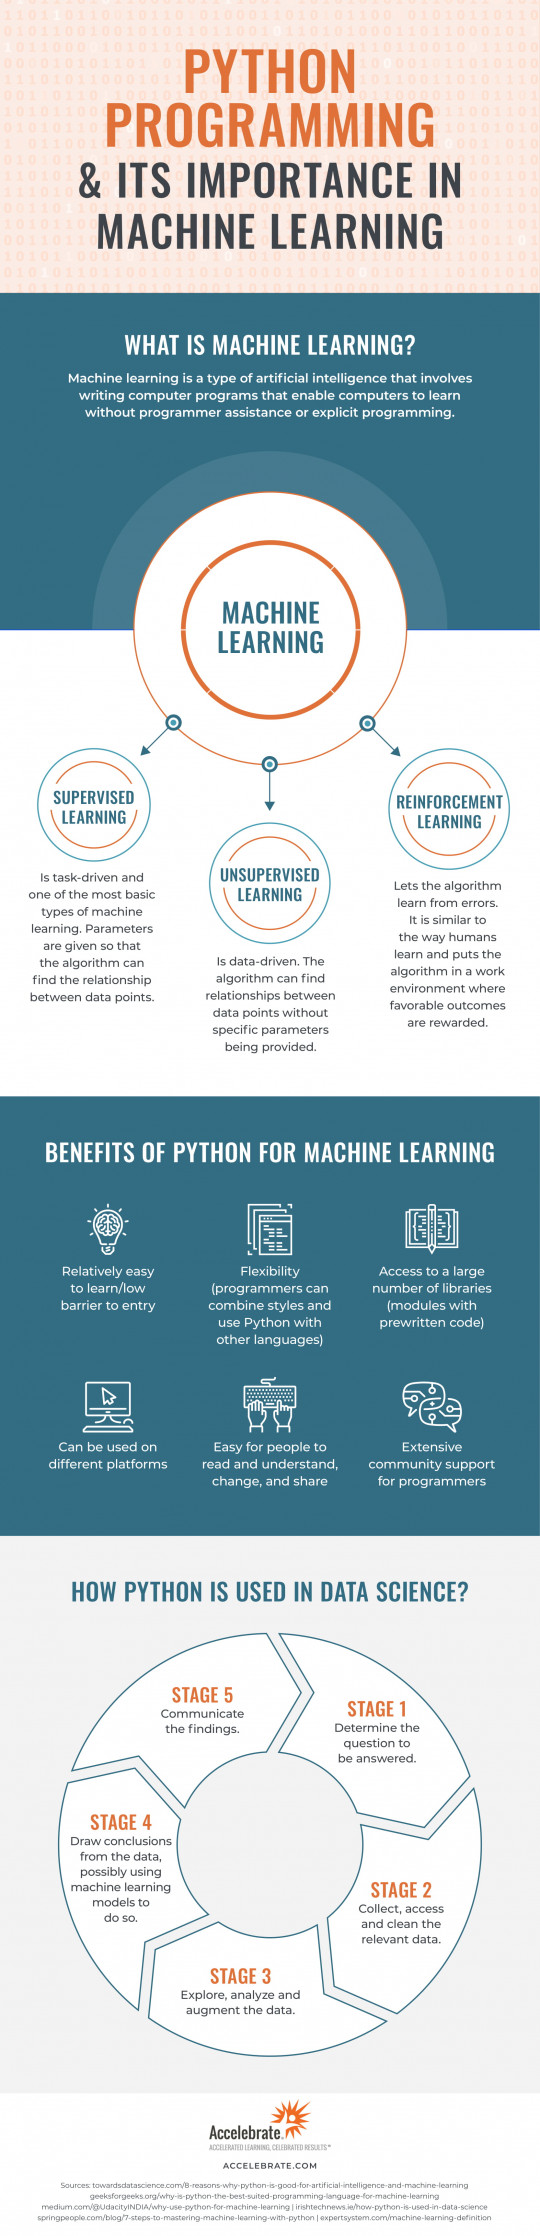 Python Programming and Its Importance In Machine Learning